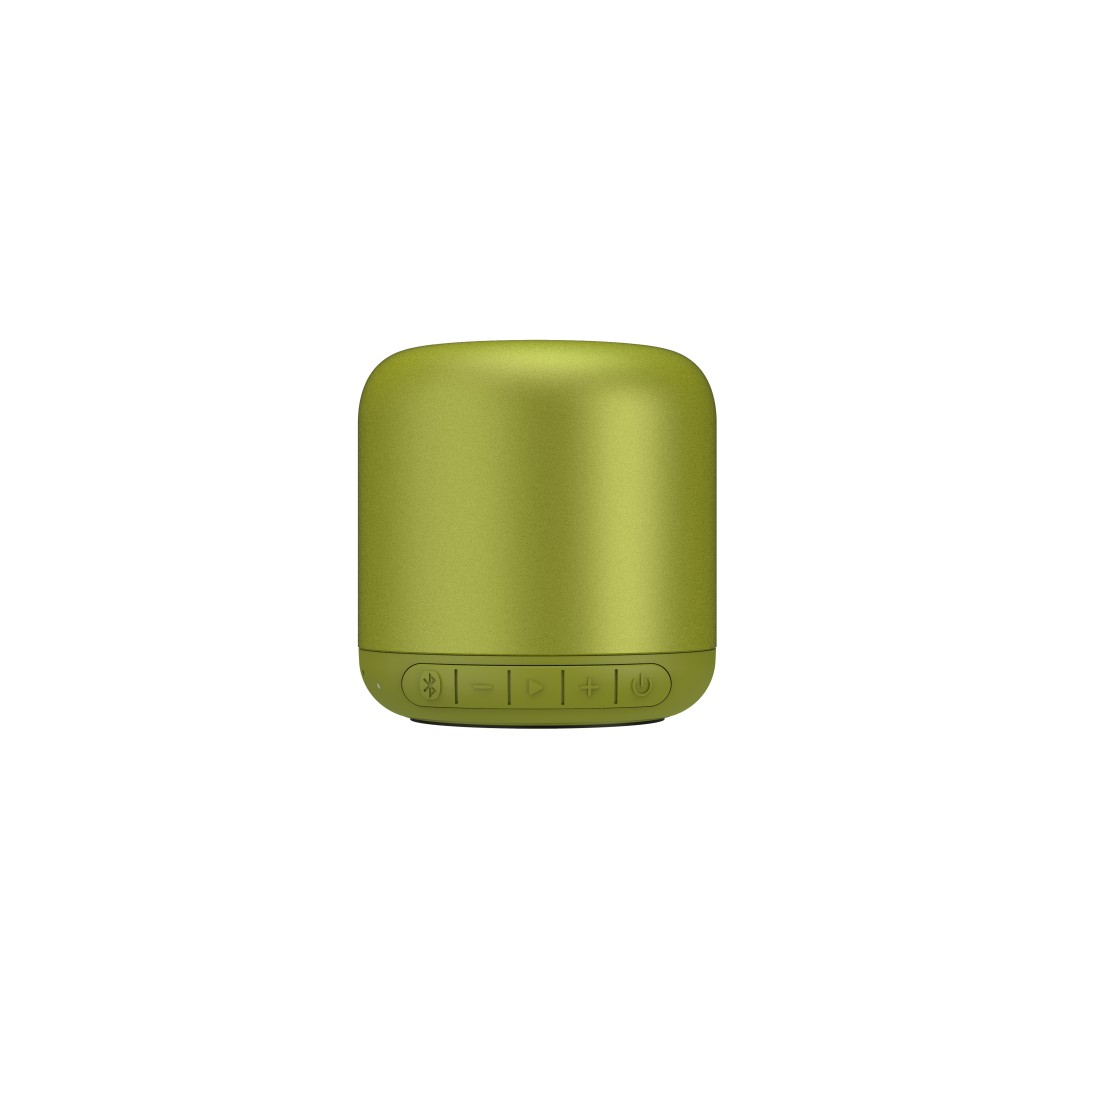 "abx2 High-Res Image 2 - Hama, Enceinte Bluetooth® ""Drum 2.0"", 3,5 W, vert jaune"